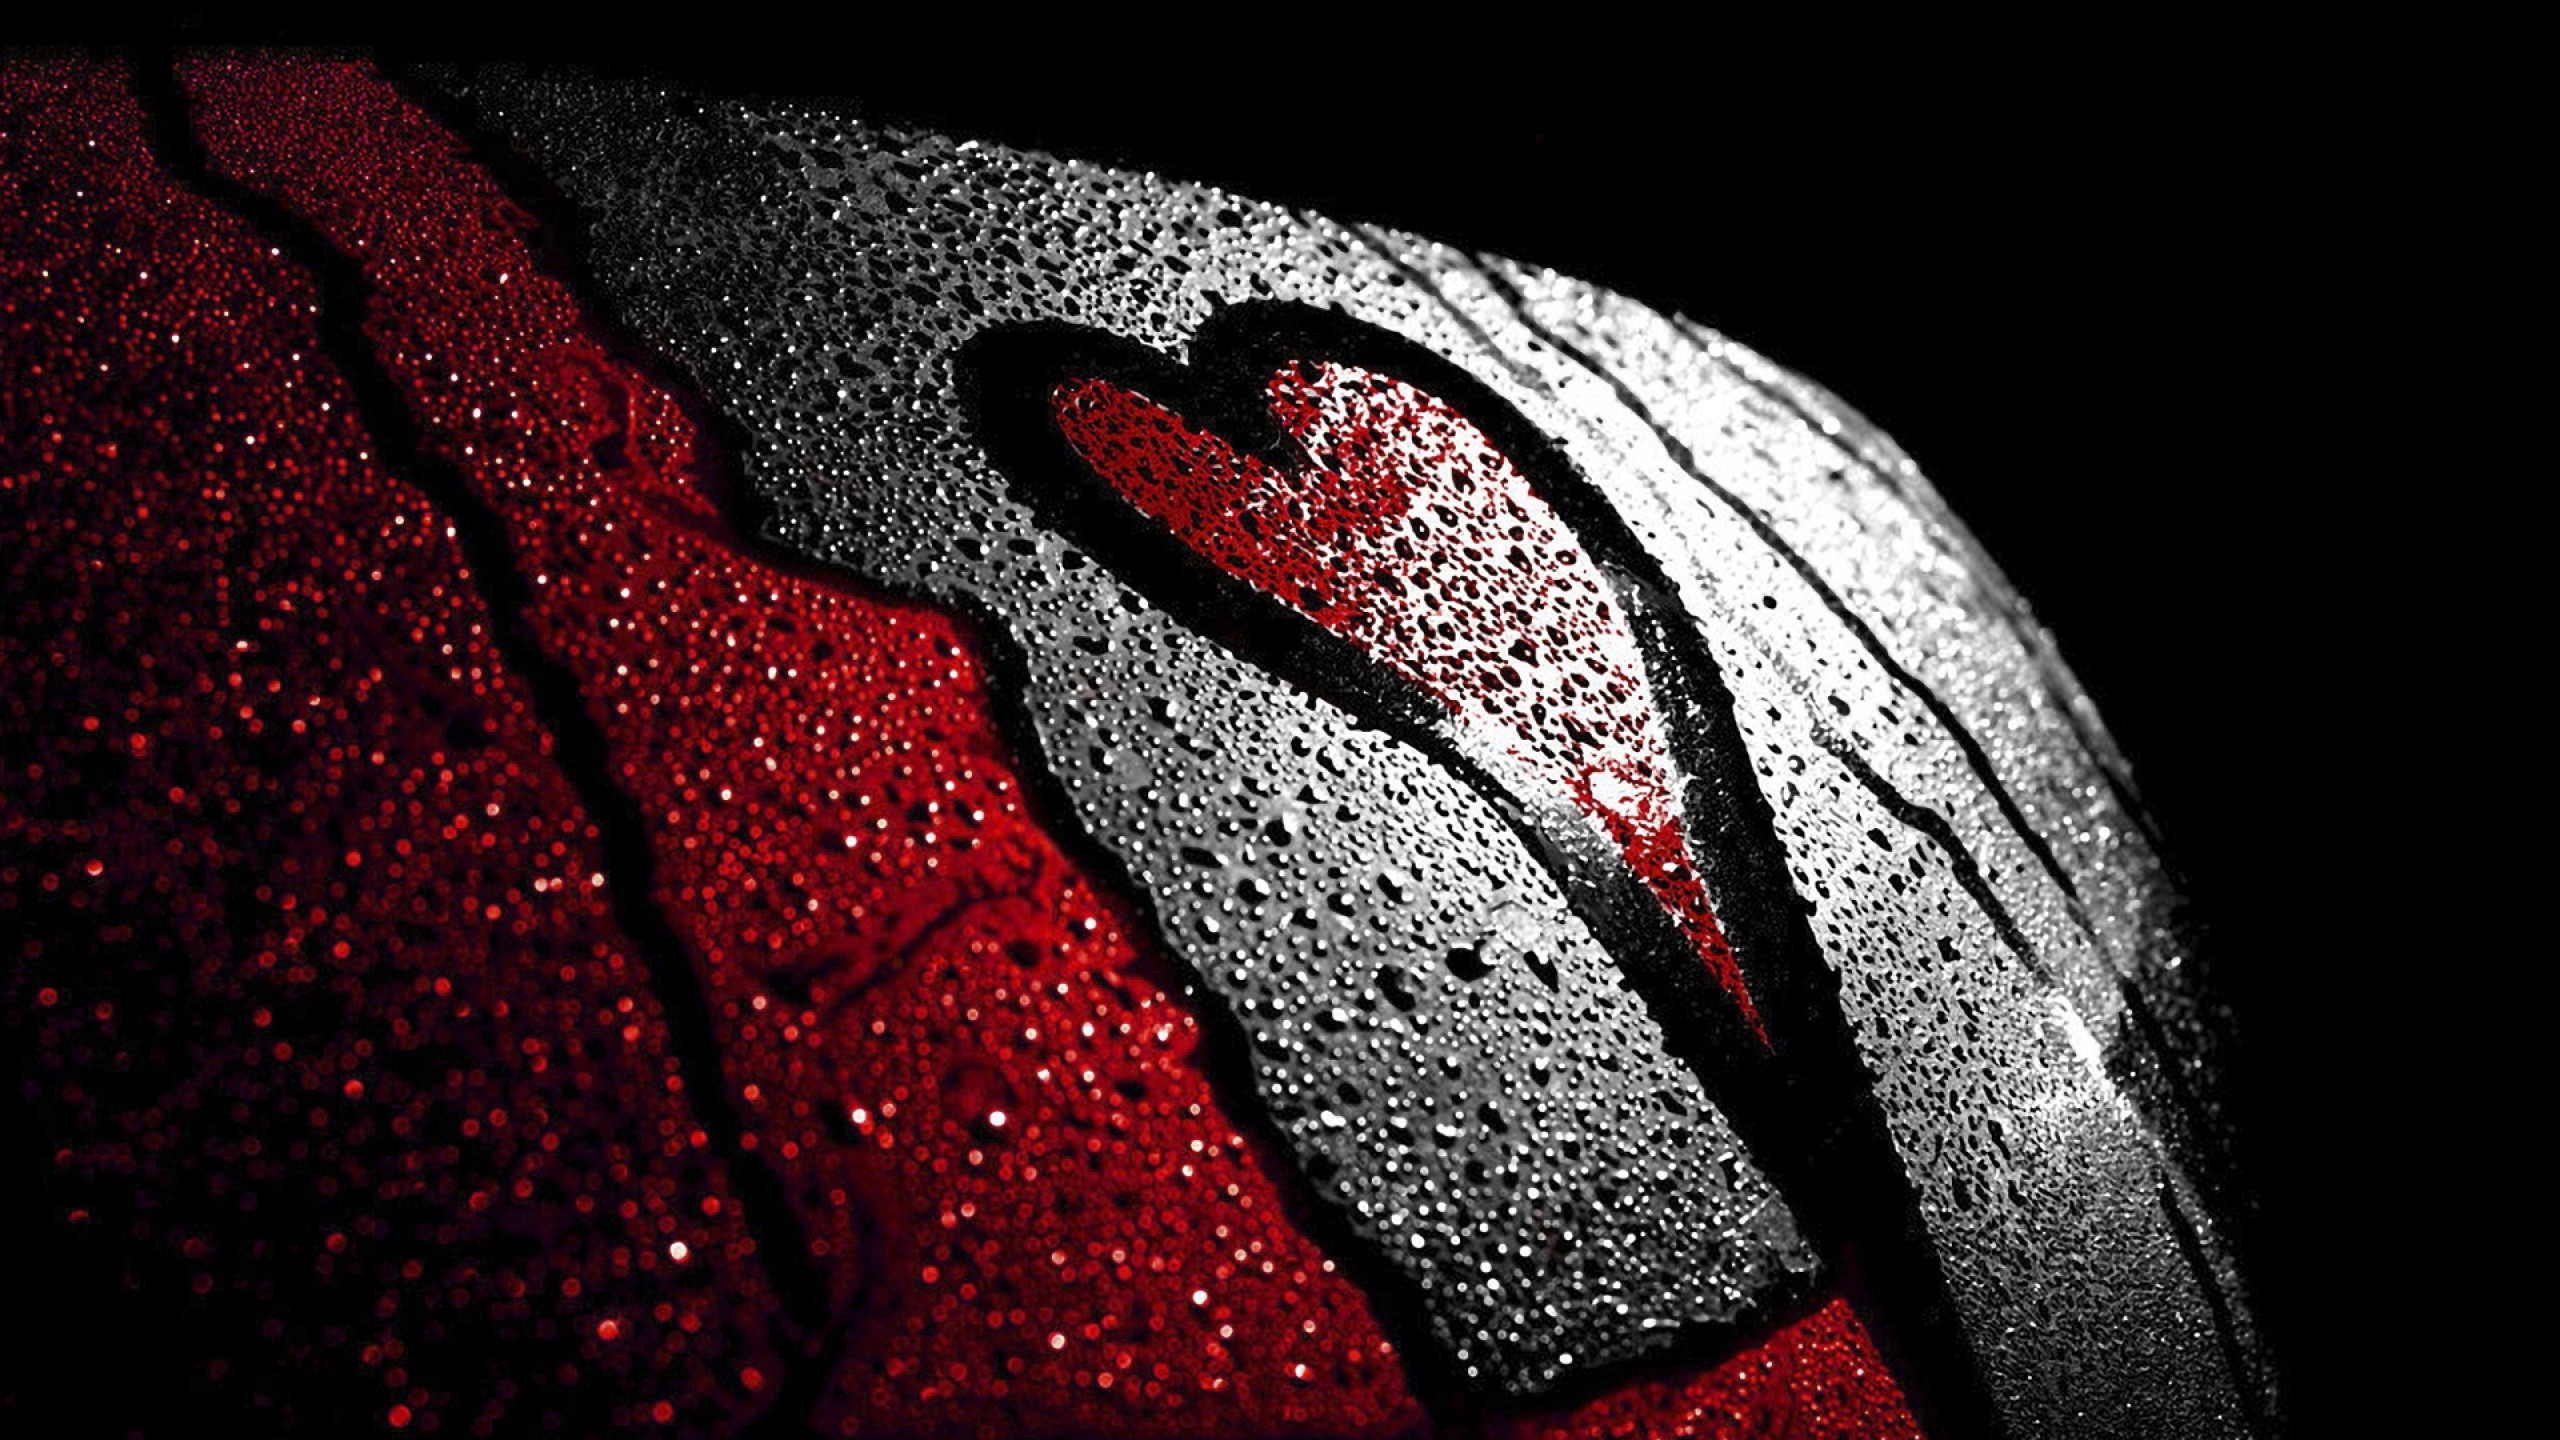 2560x1440  Wallpaper heart, love, red, black